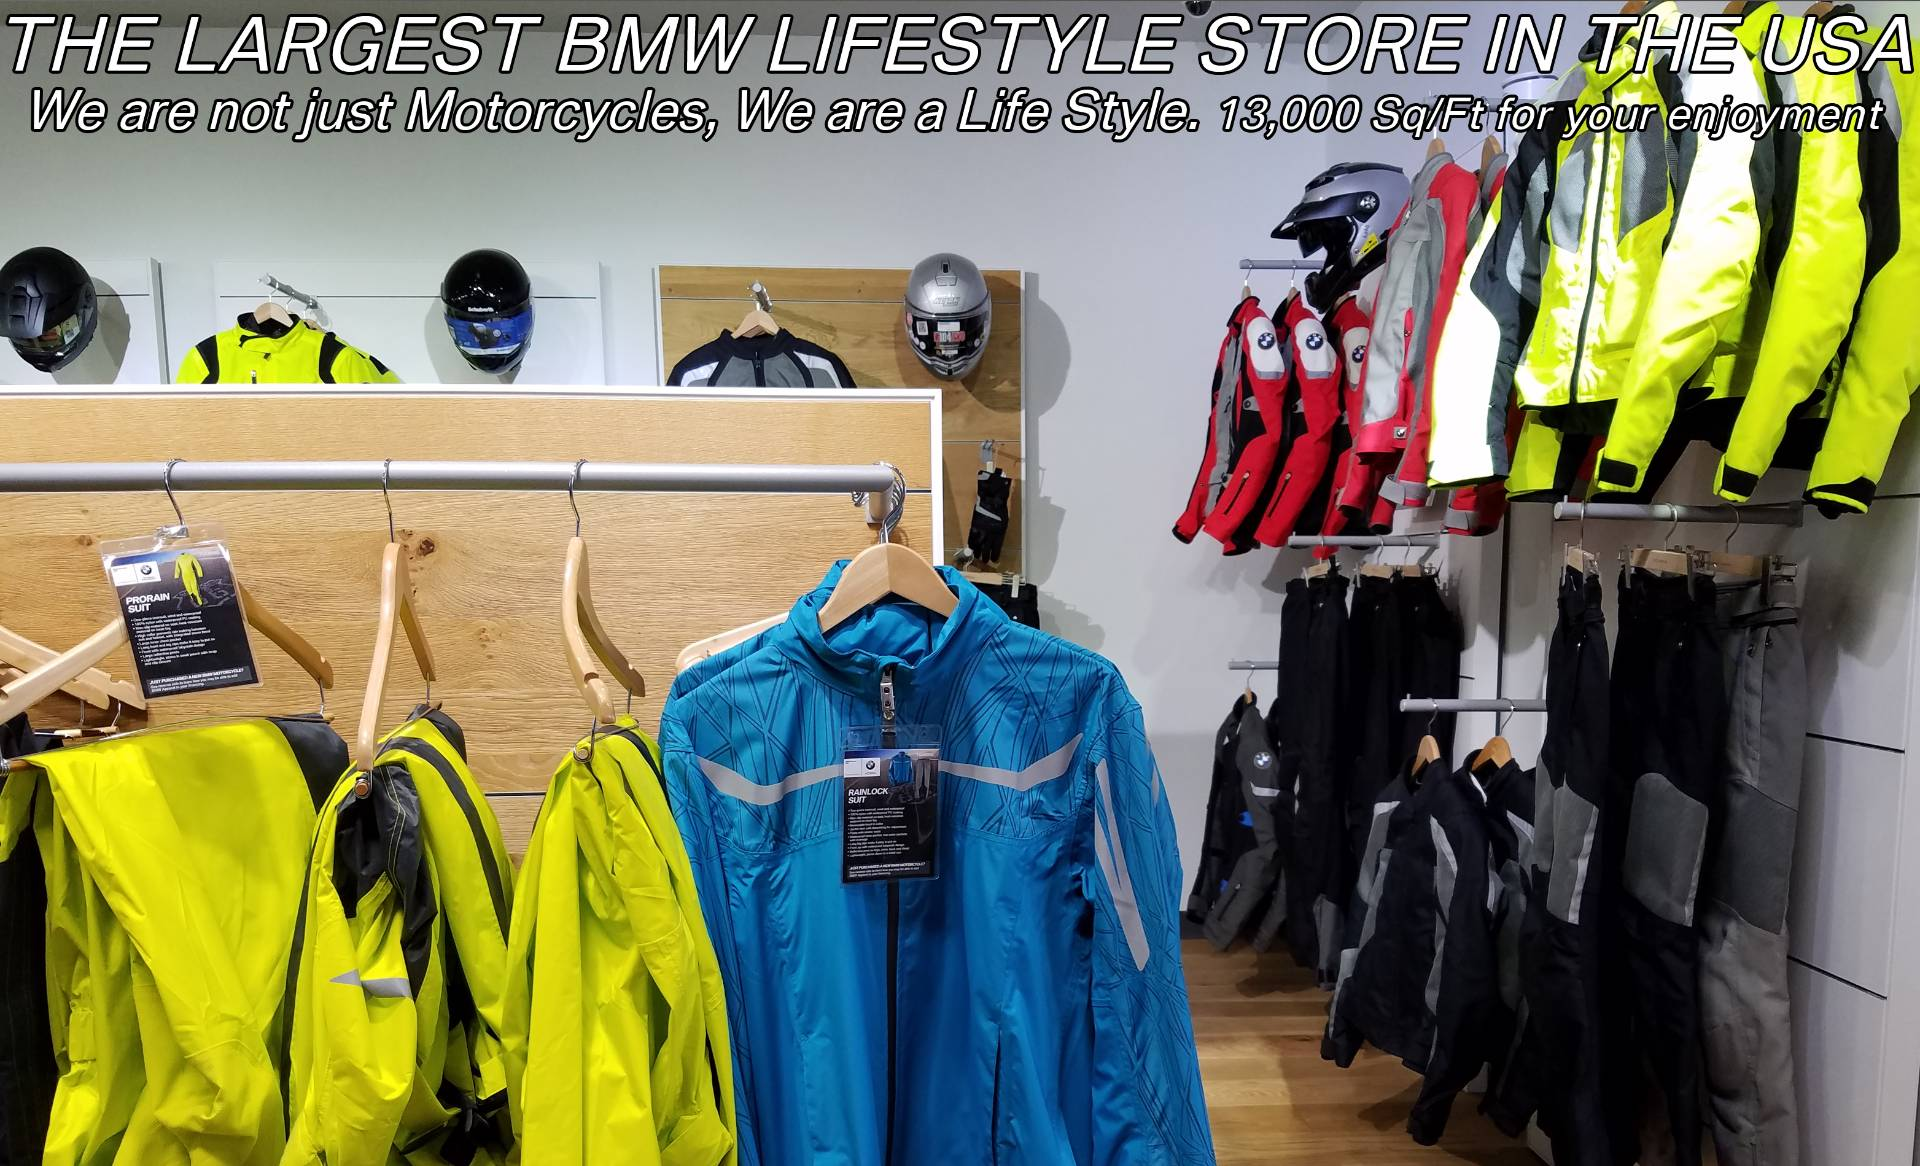 New 2019 BMW K 1600 B for sale, BMW K 1600B for sale, BMW Motorcycle K1600B, new BMW Bagger, Gran America. BMW Motorcycles of Miami, Motorcycles of Miami, Motorcycles Miami - Photo 42